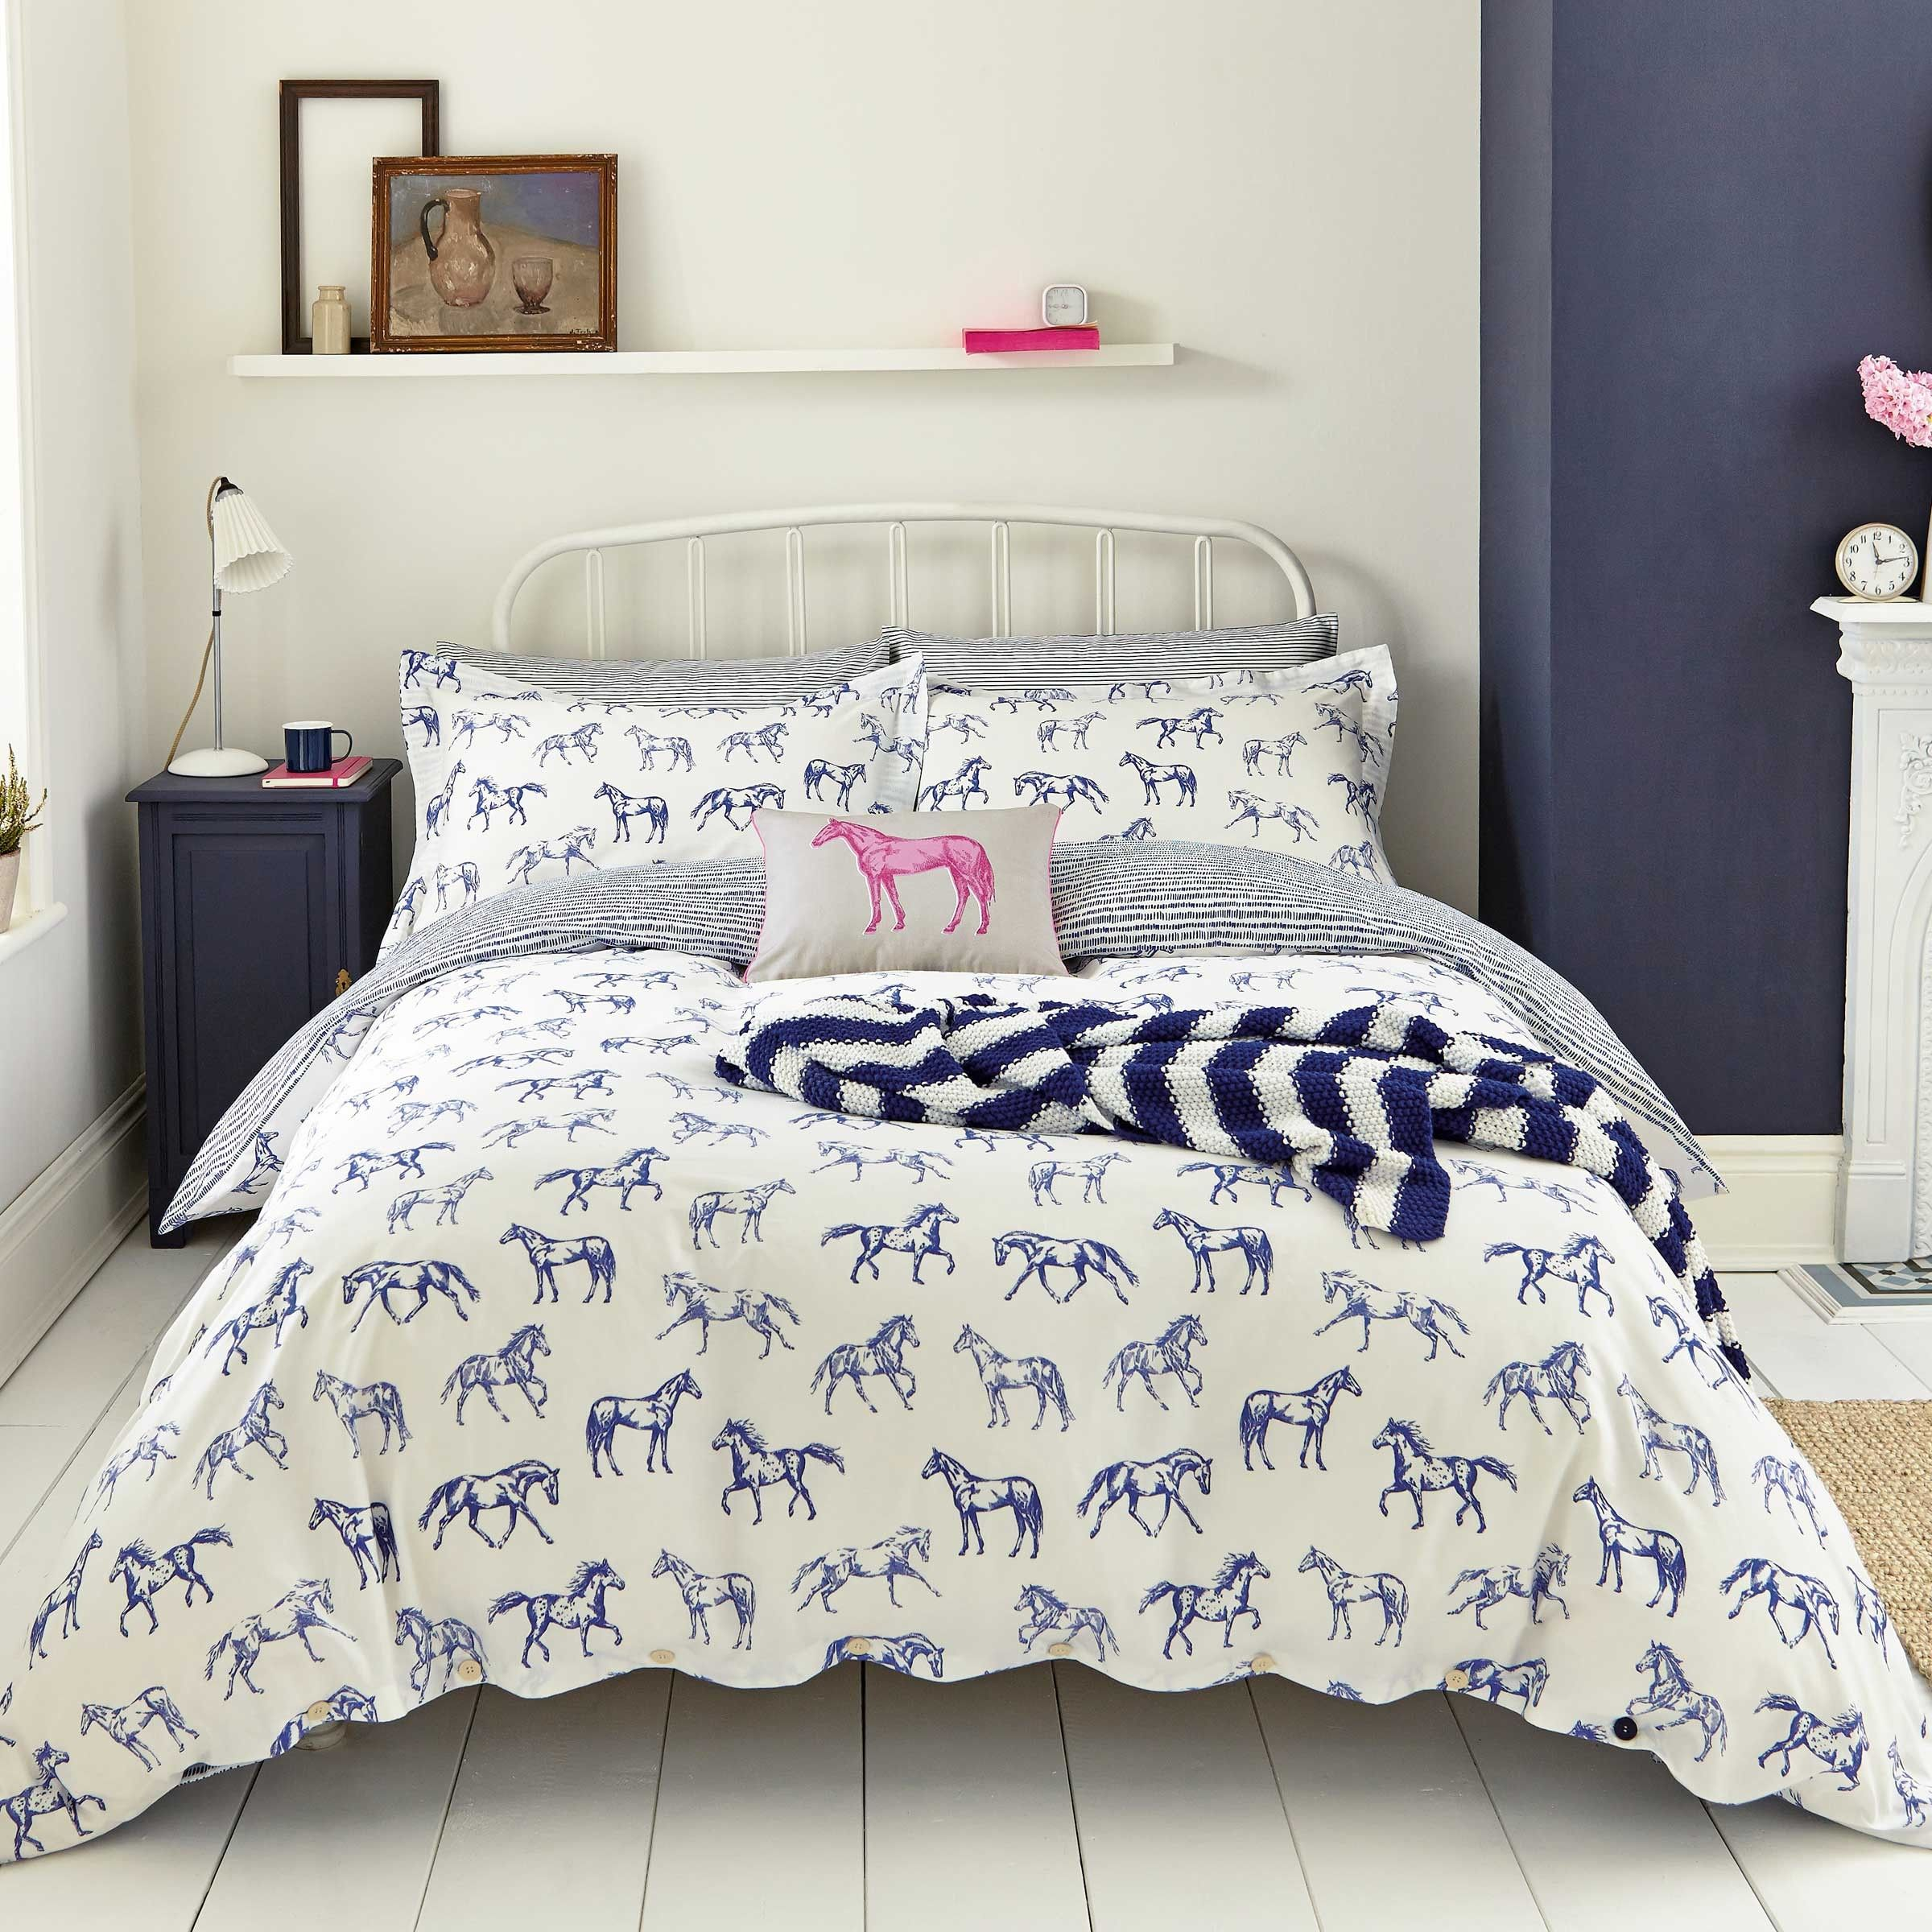 Blue Horse Print Bedding Hand Drawn Horse By Joules At Bedeck